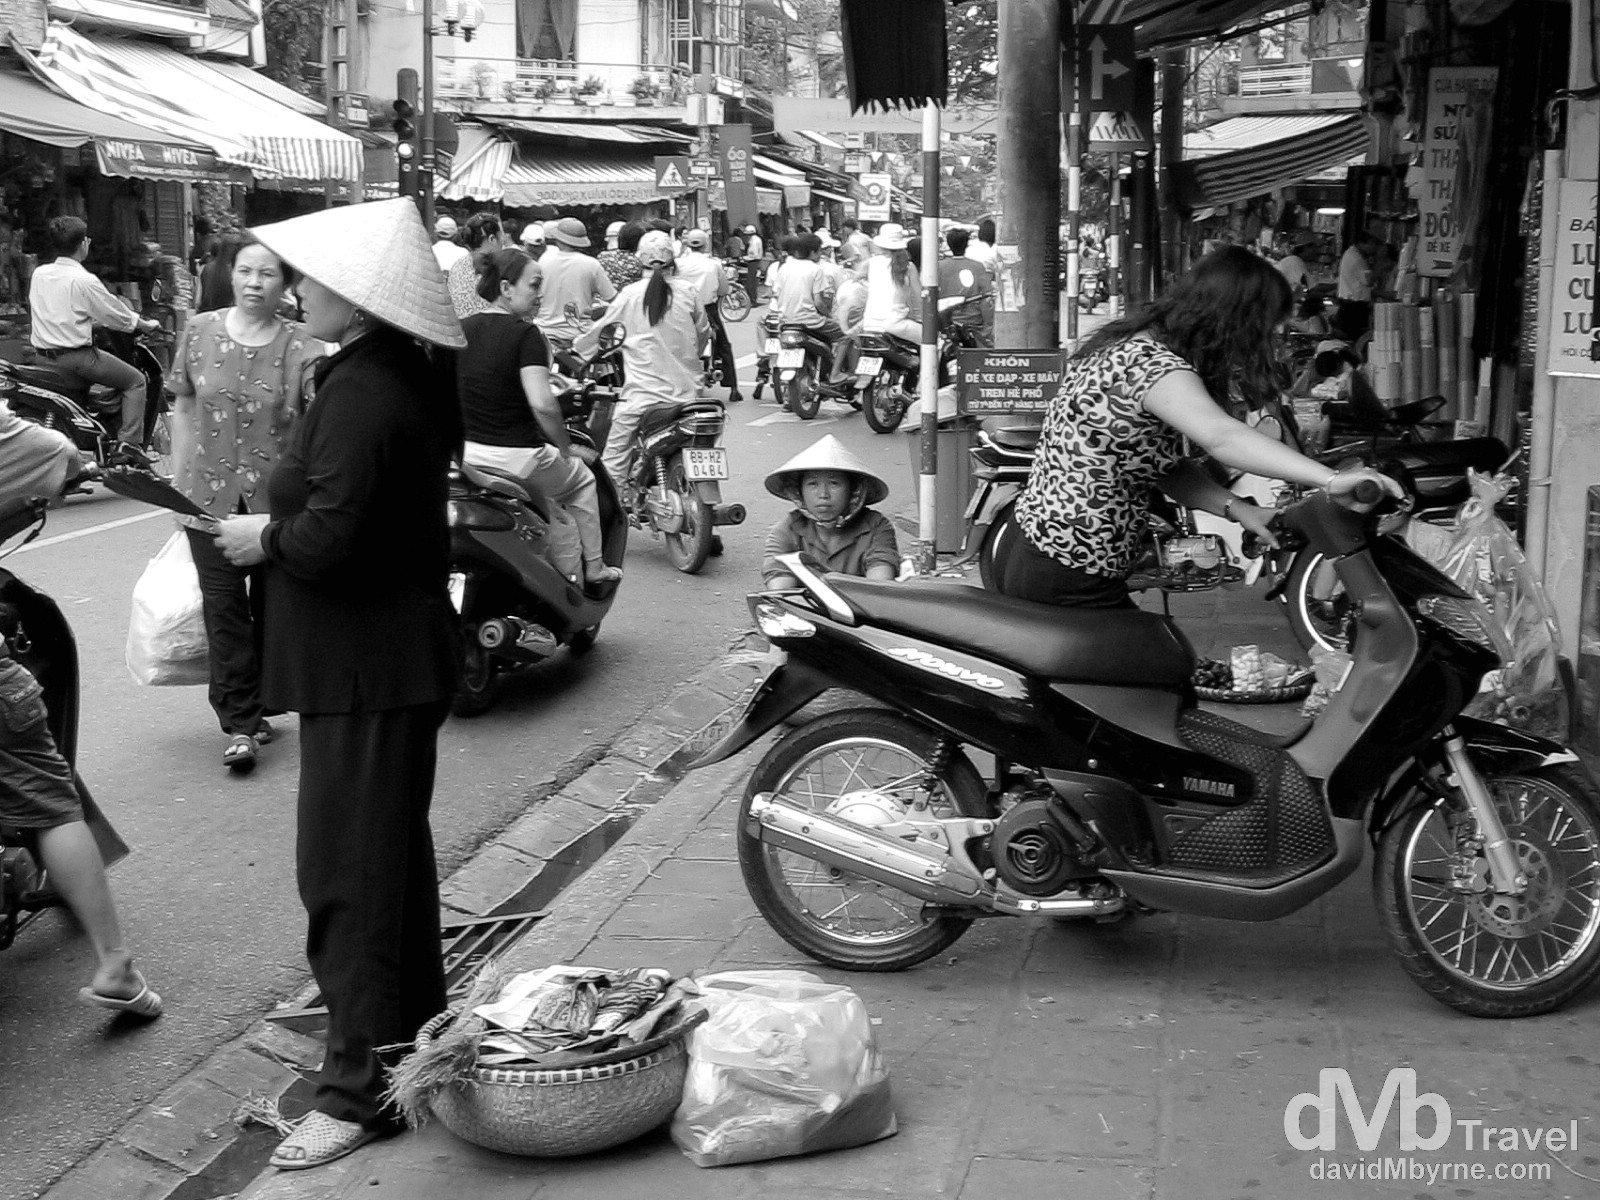 Activity in a busy section of the Old Quarter in Hanoi, Vietnam. September 5th 2005.